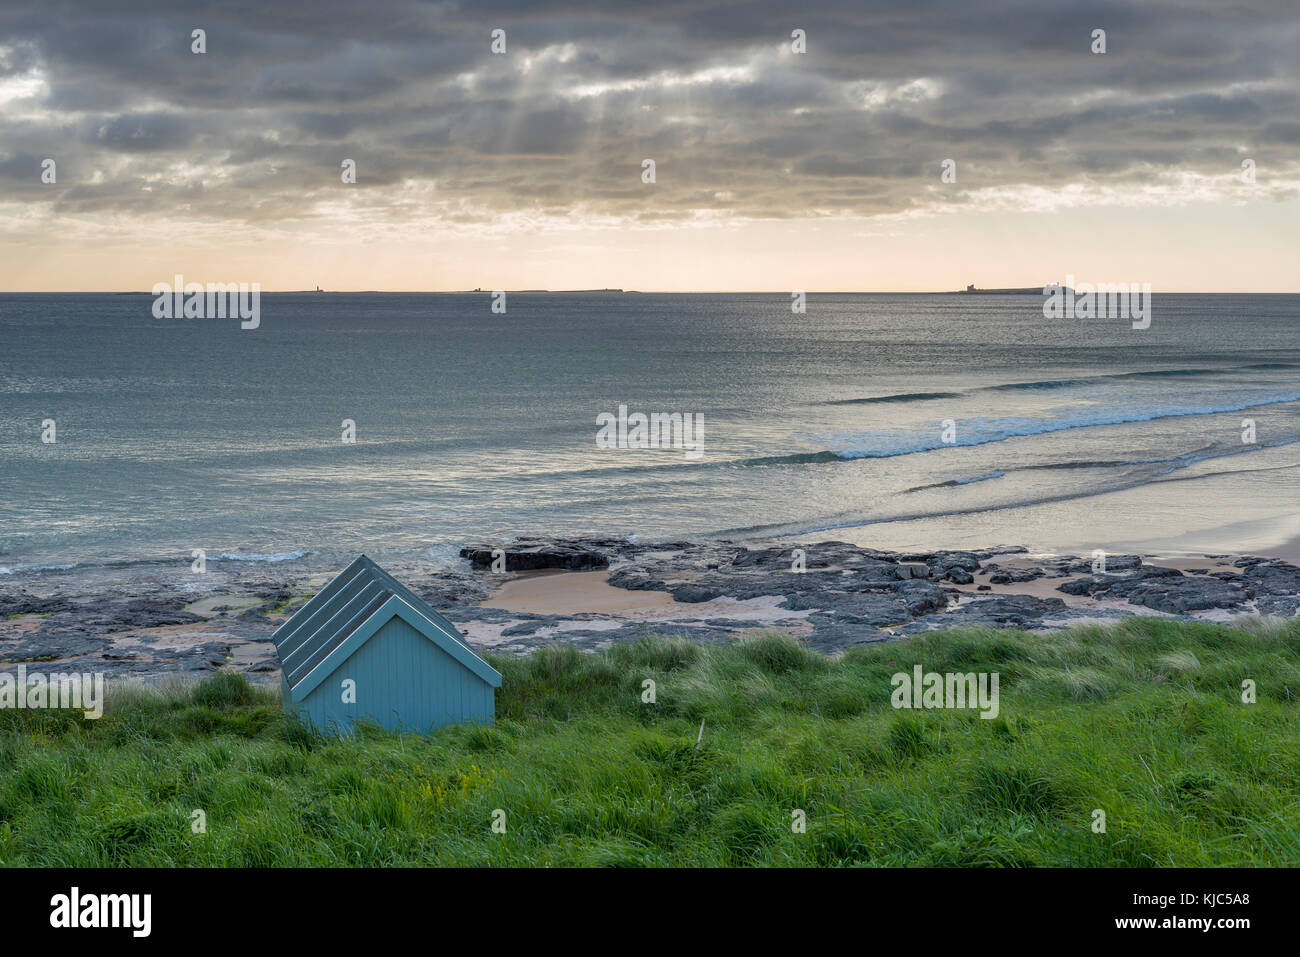 Fisherman's hut on the beach along the North Sea with dramatic cloudy sky at Bamburgh in Northumberland, England, - Stock Image